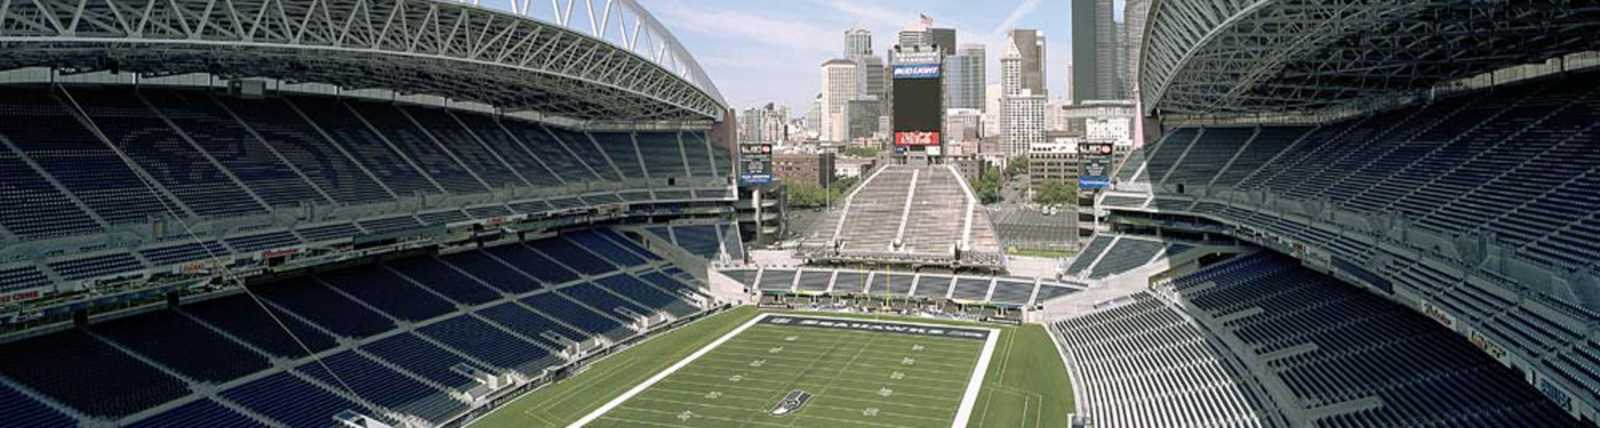 CenturyLink Field and Event Center